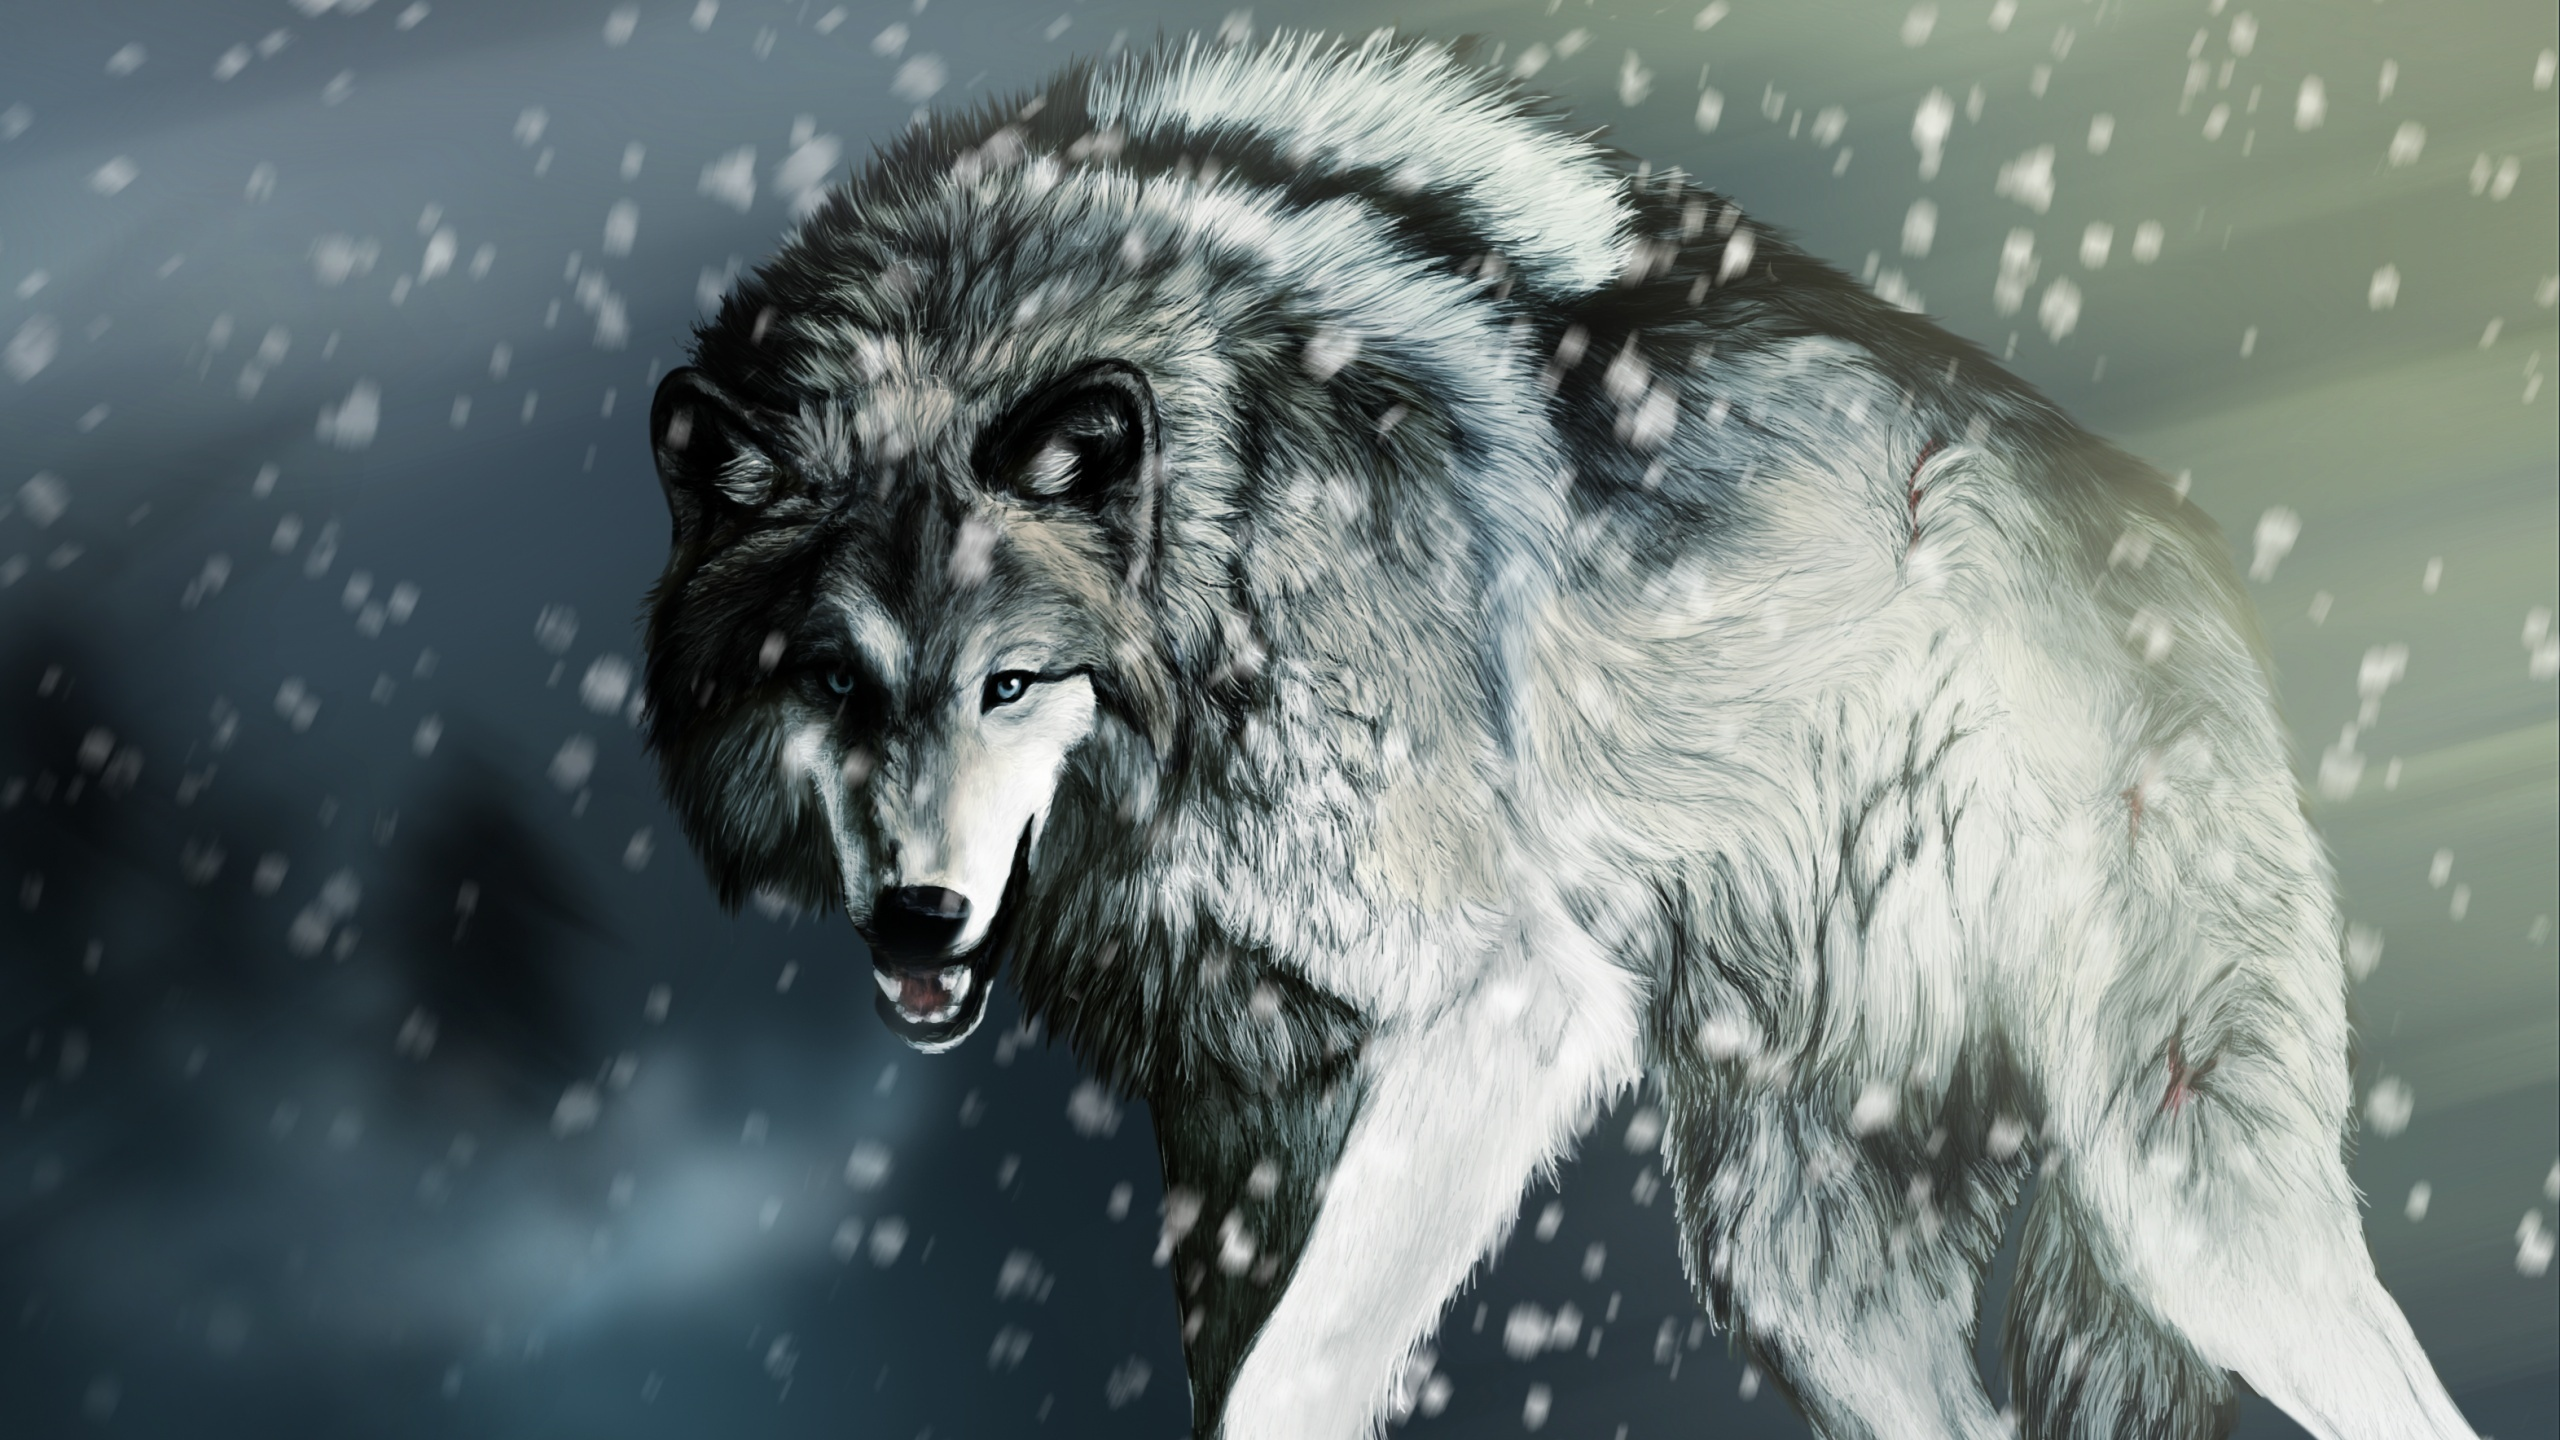 Wallpaper Wounded wolf in the winter